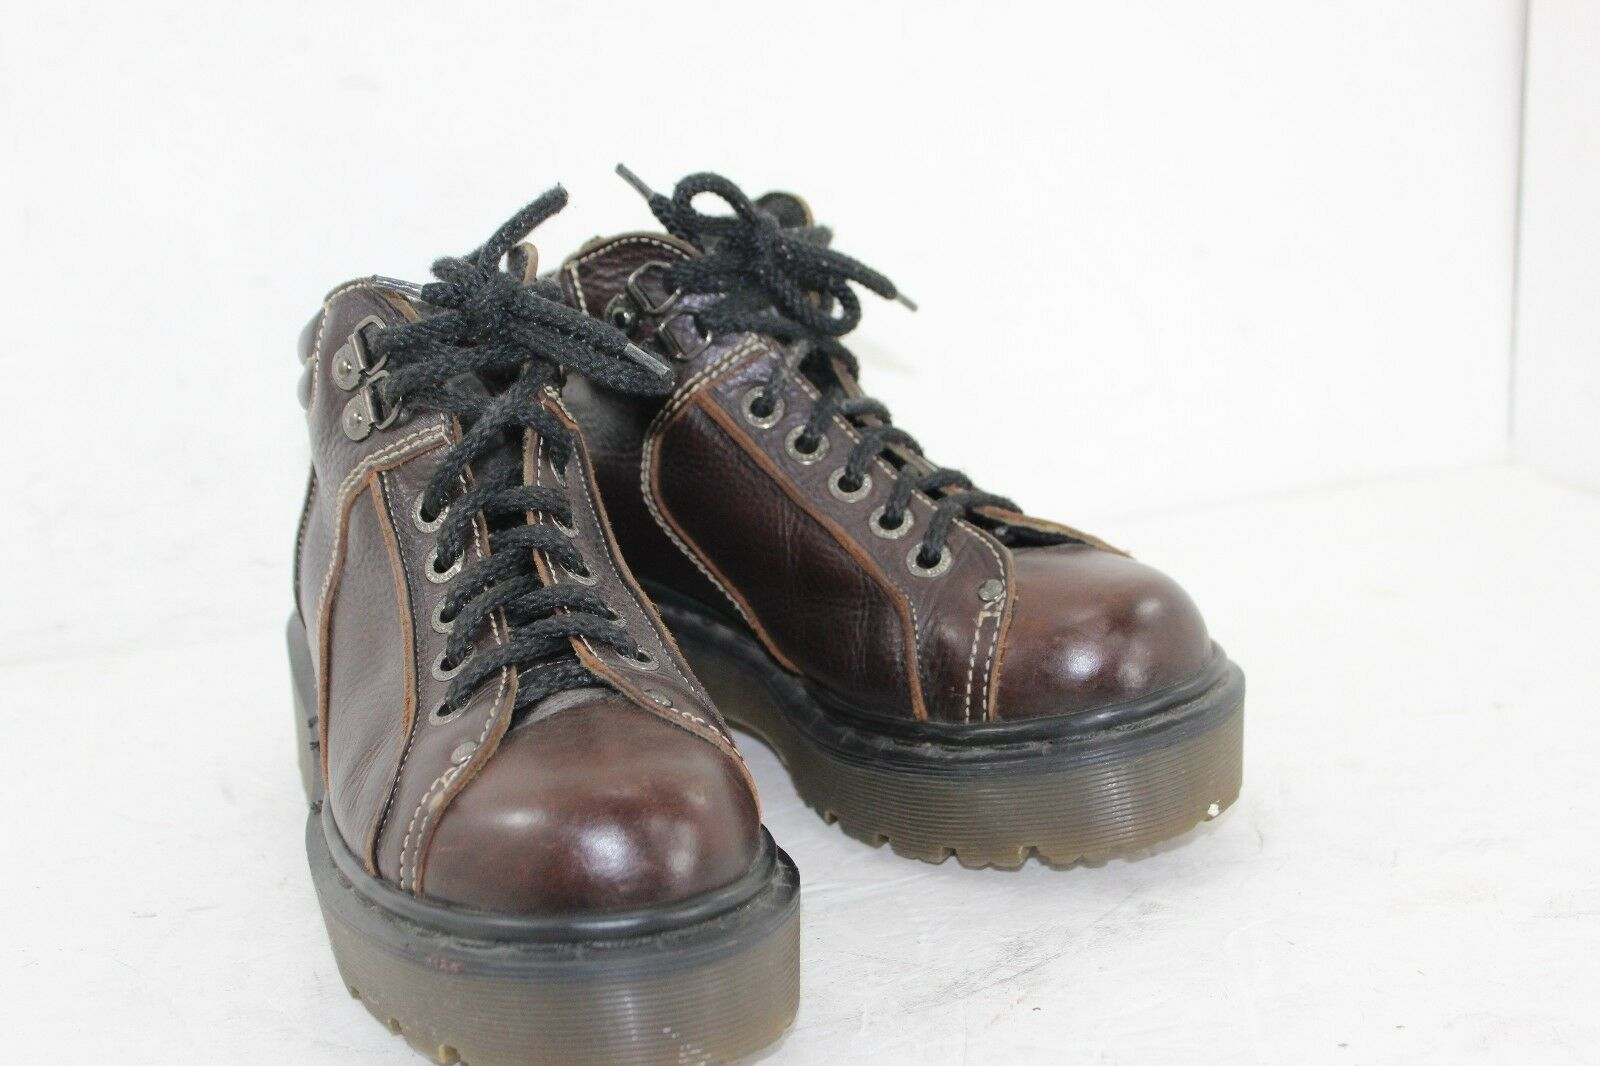 DR MARTENS BOOTS SZ 7 WOMENS MADE IN ENGLAND IN GREAT CONDITION